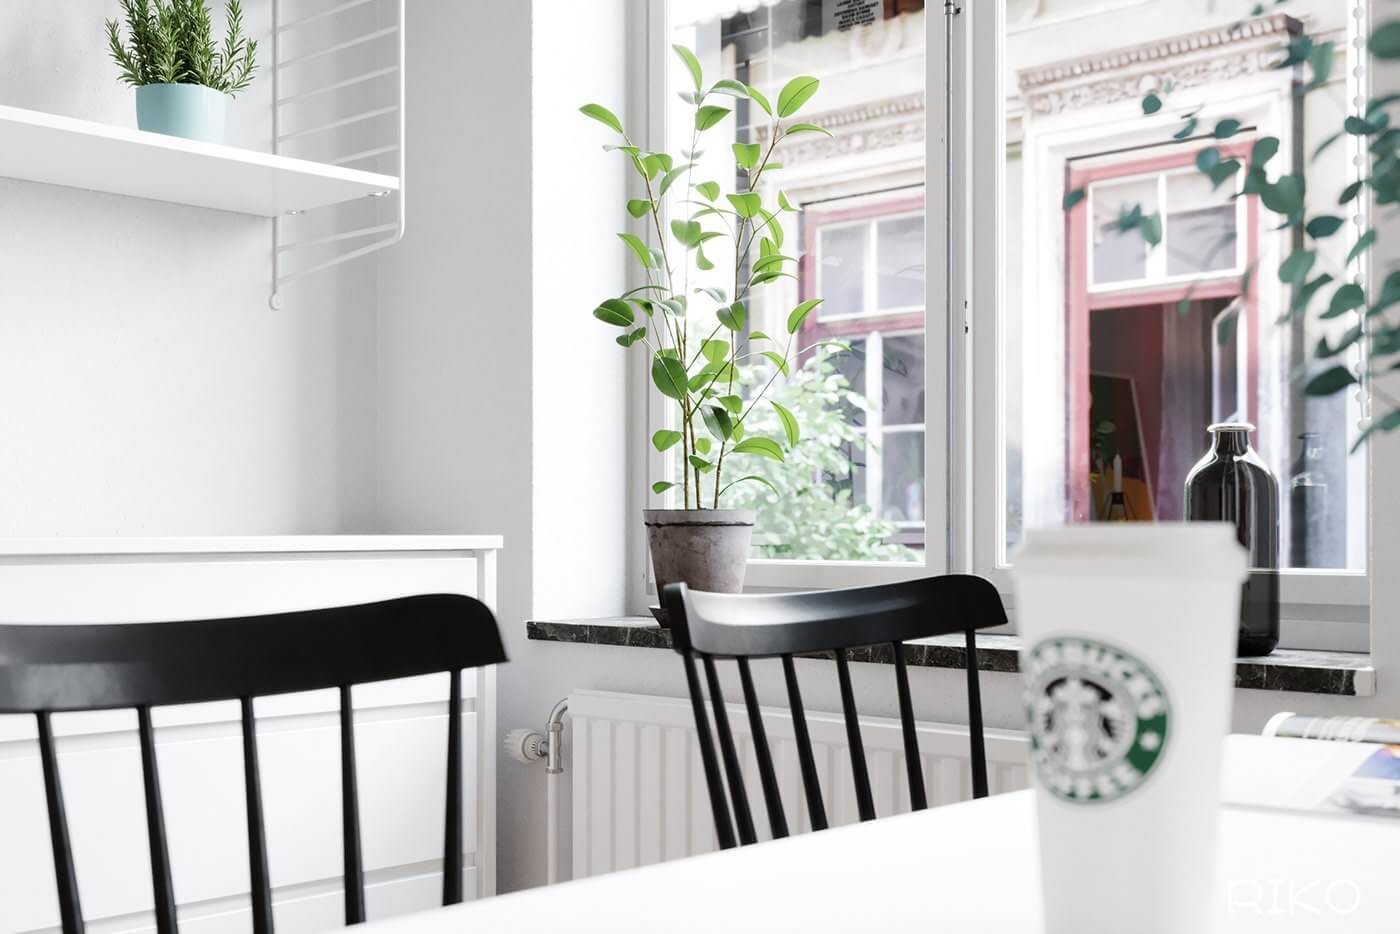 White kitchen design dining table plants - cgi visualization